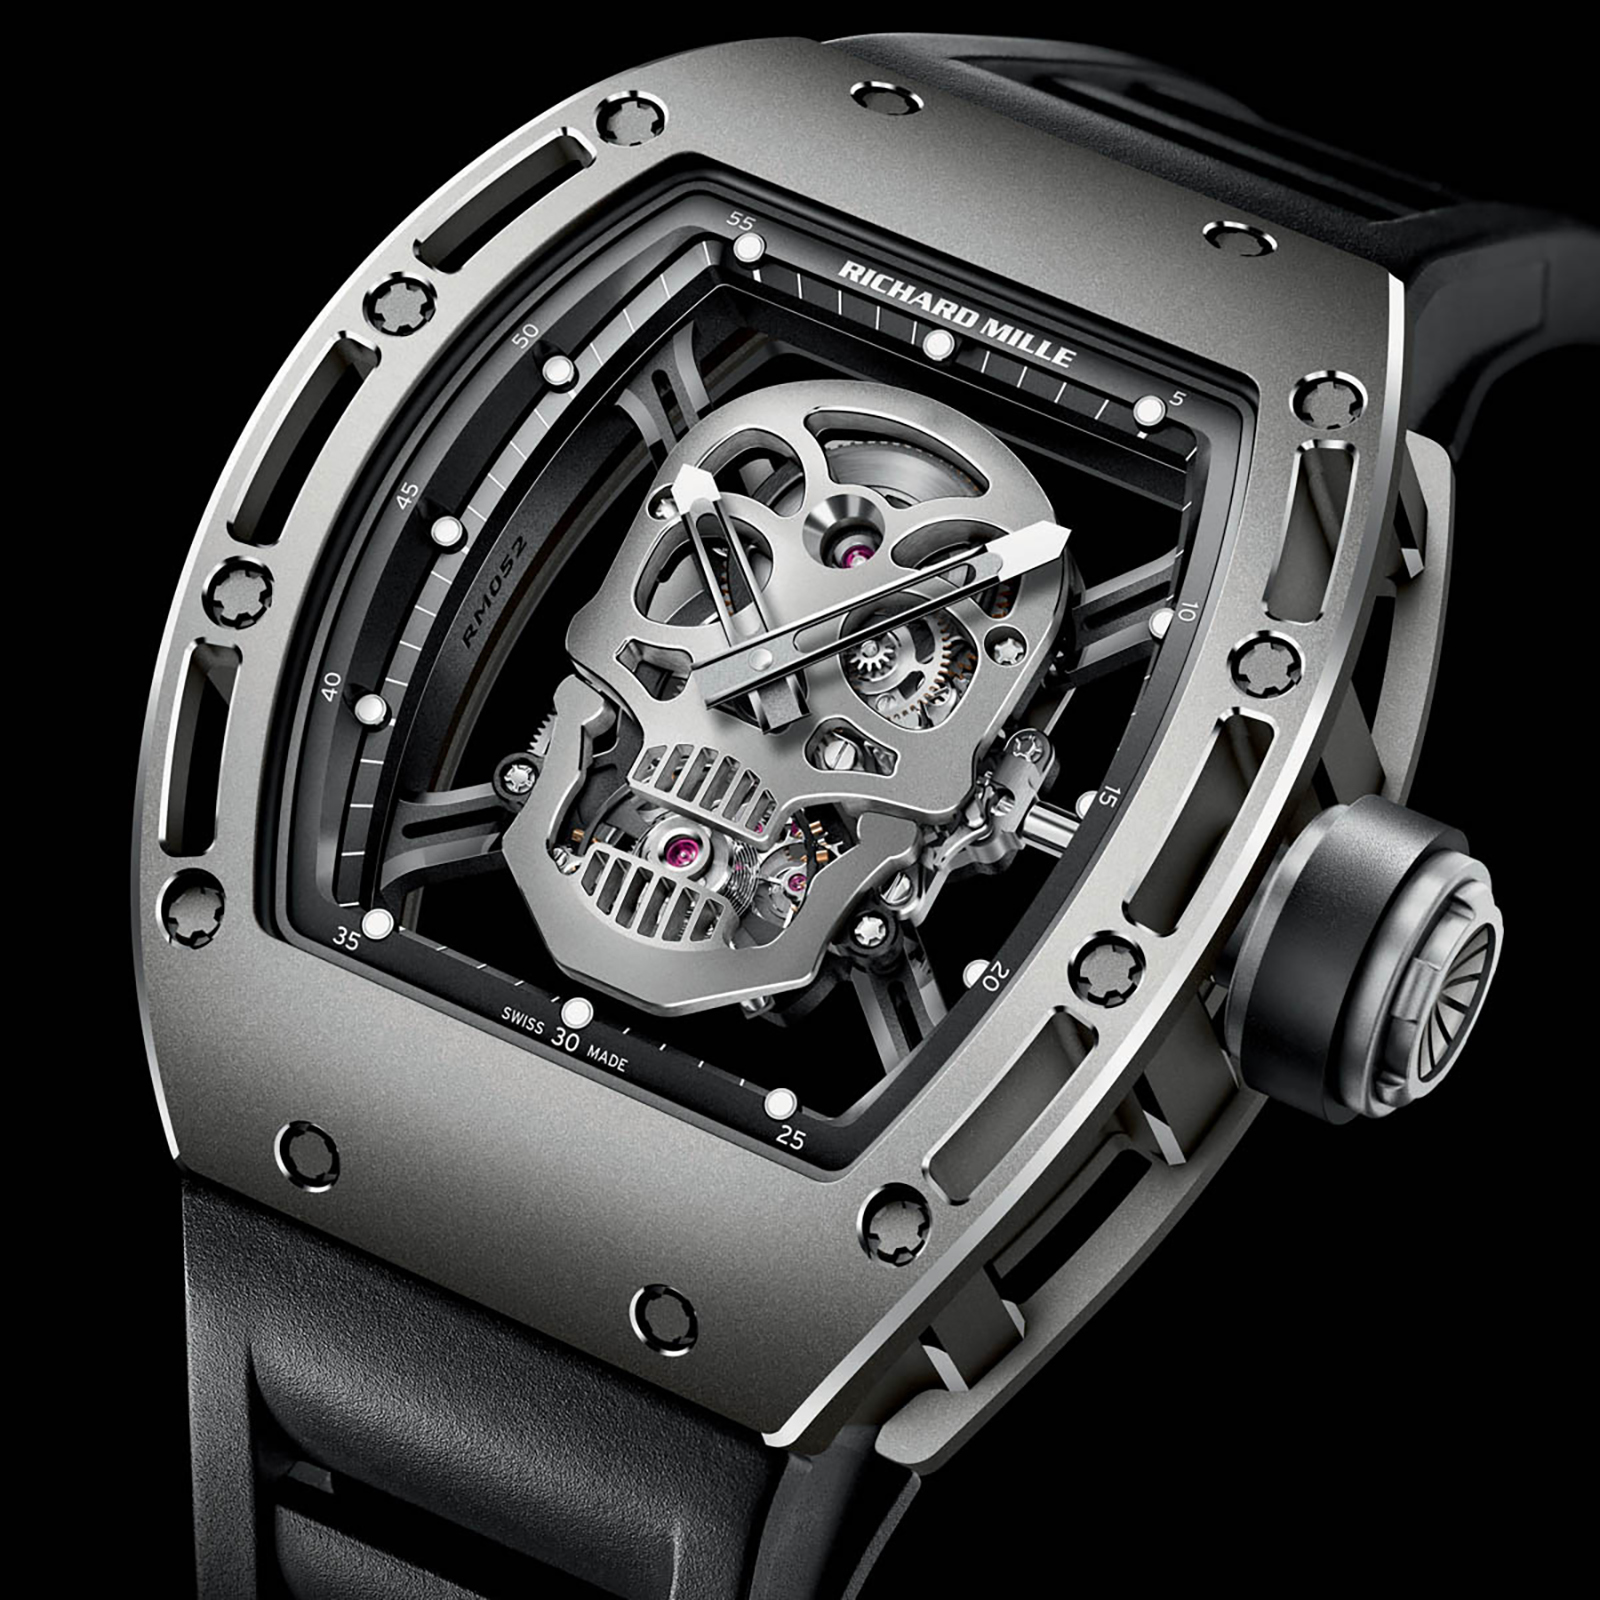 1970229e4f The watch has a skull-shaped base plate made of titanium, with a pair of  crossbones that serve as bridges. Interestingly, the skull has its mouth  slightly ...